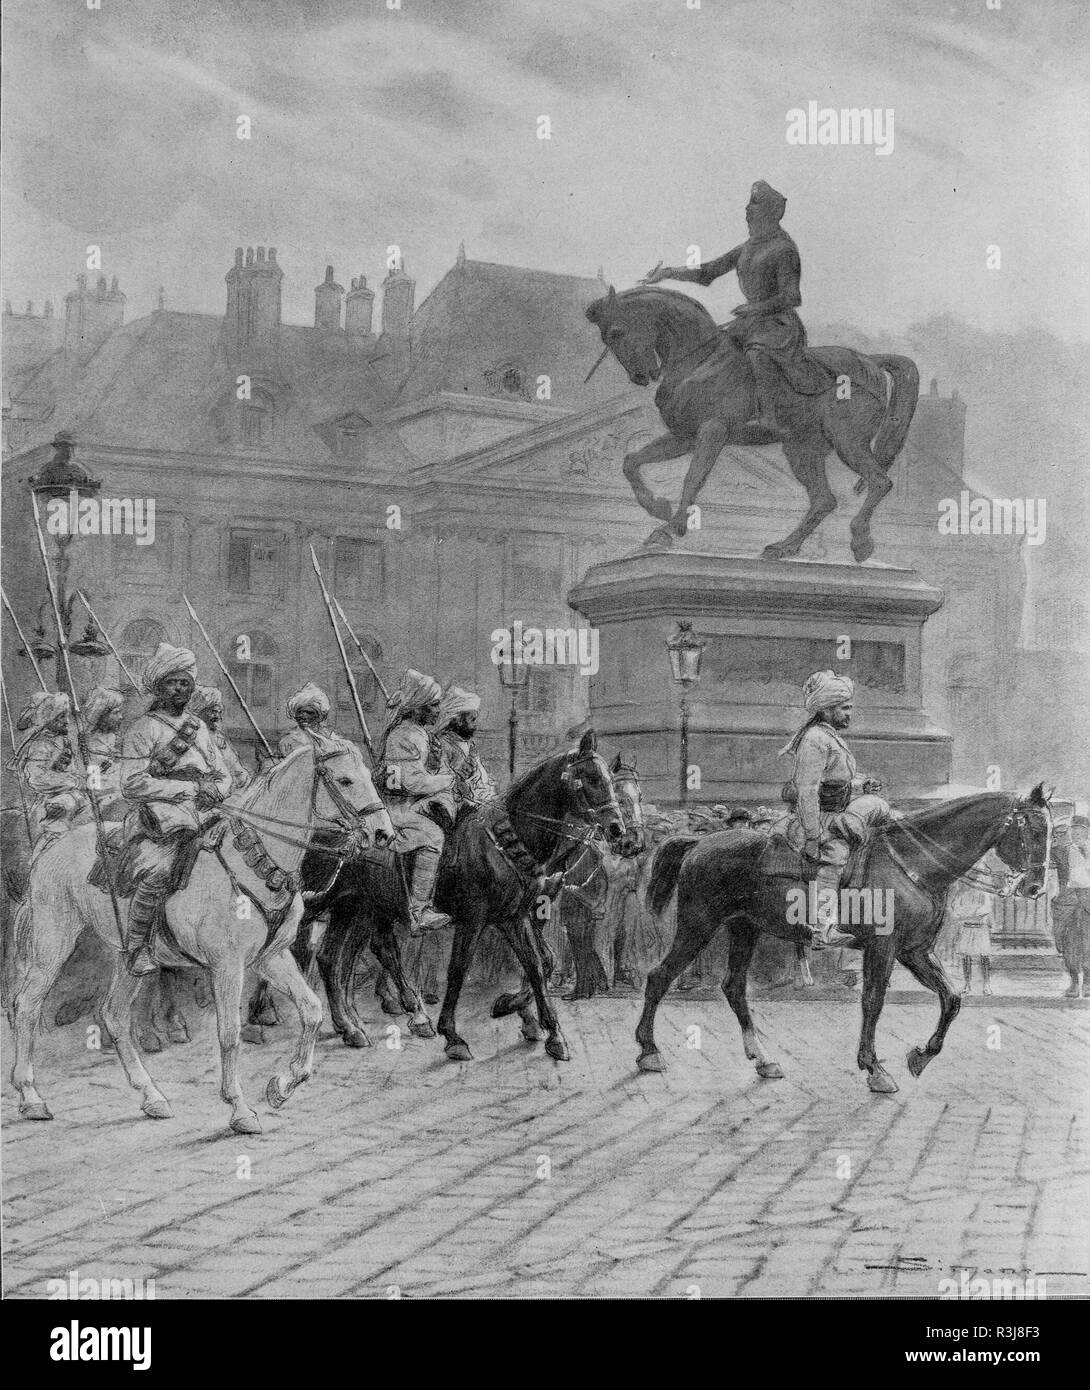 Bengal lancers parading in front of Jeanne d'Arc statue in Orleans, France - Stock Image